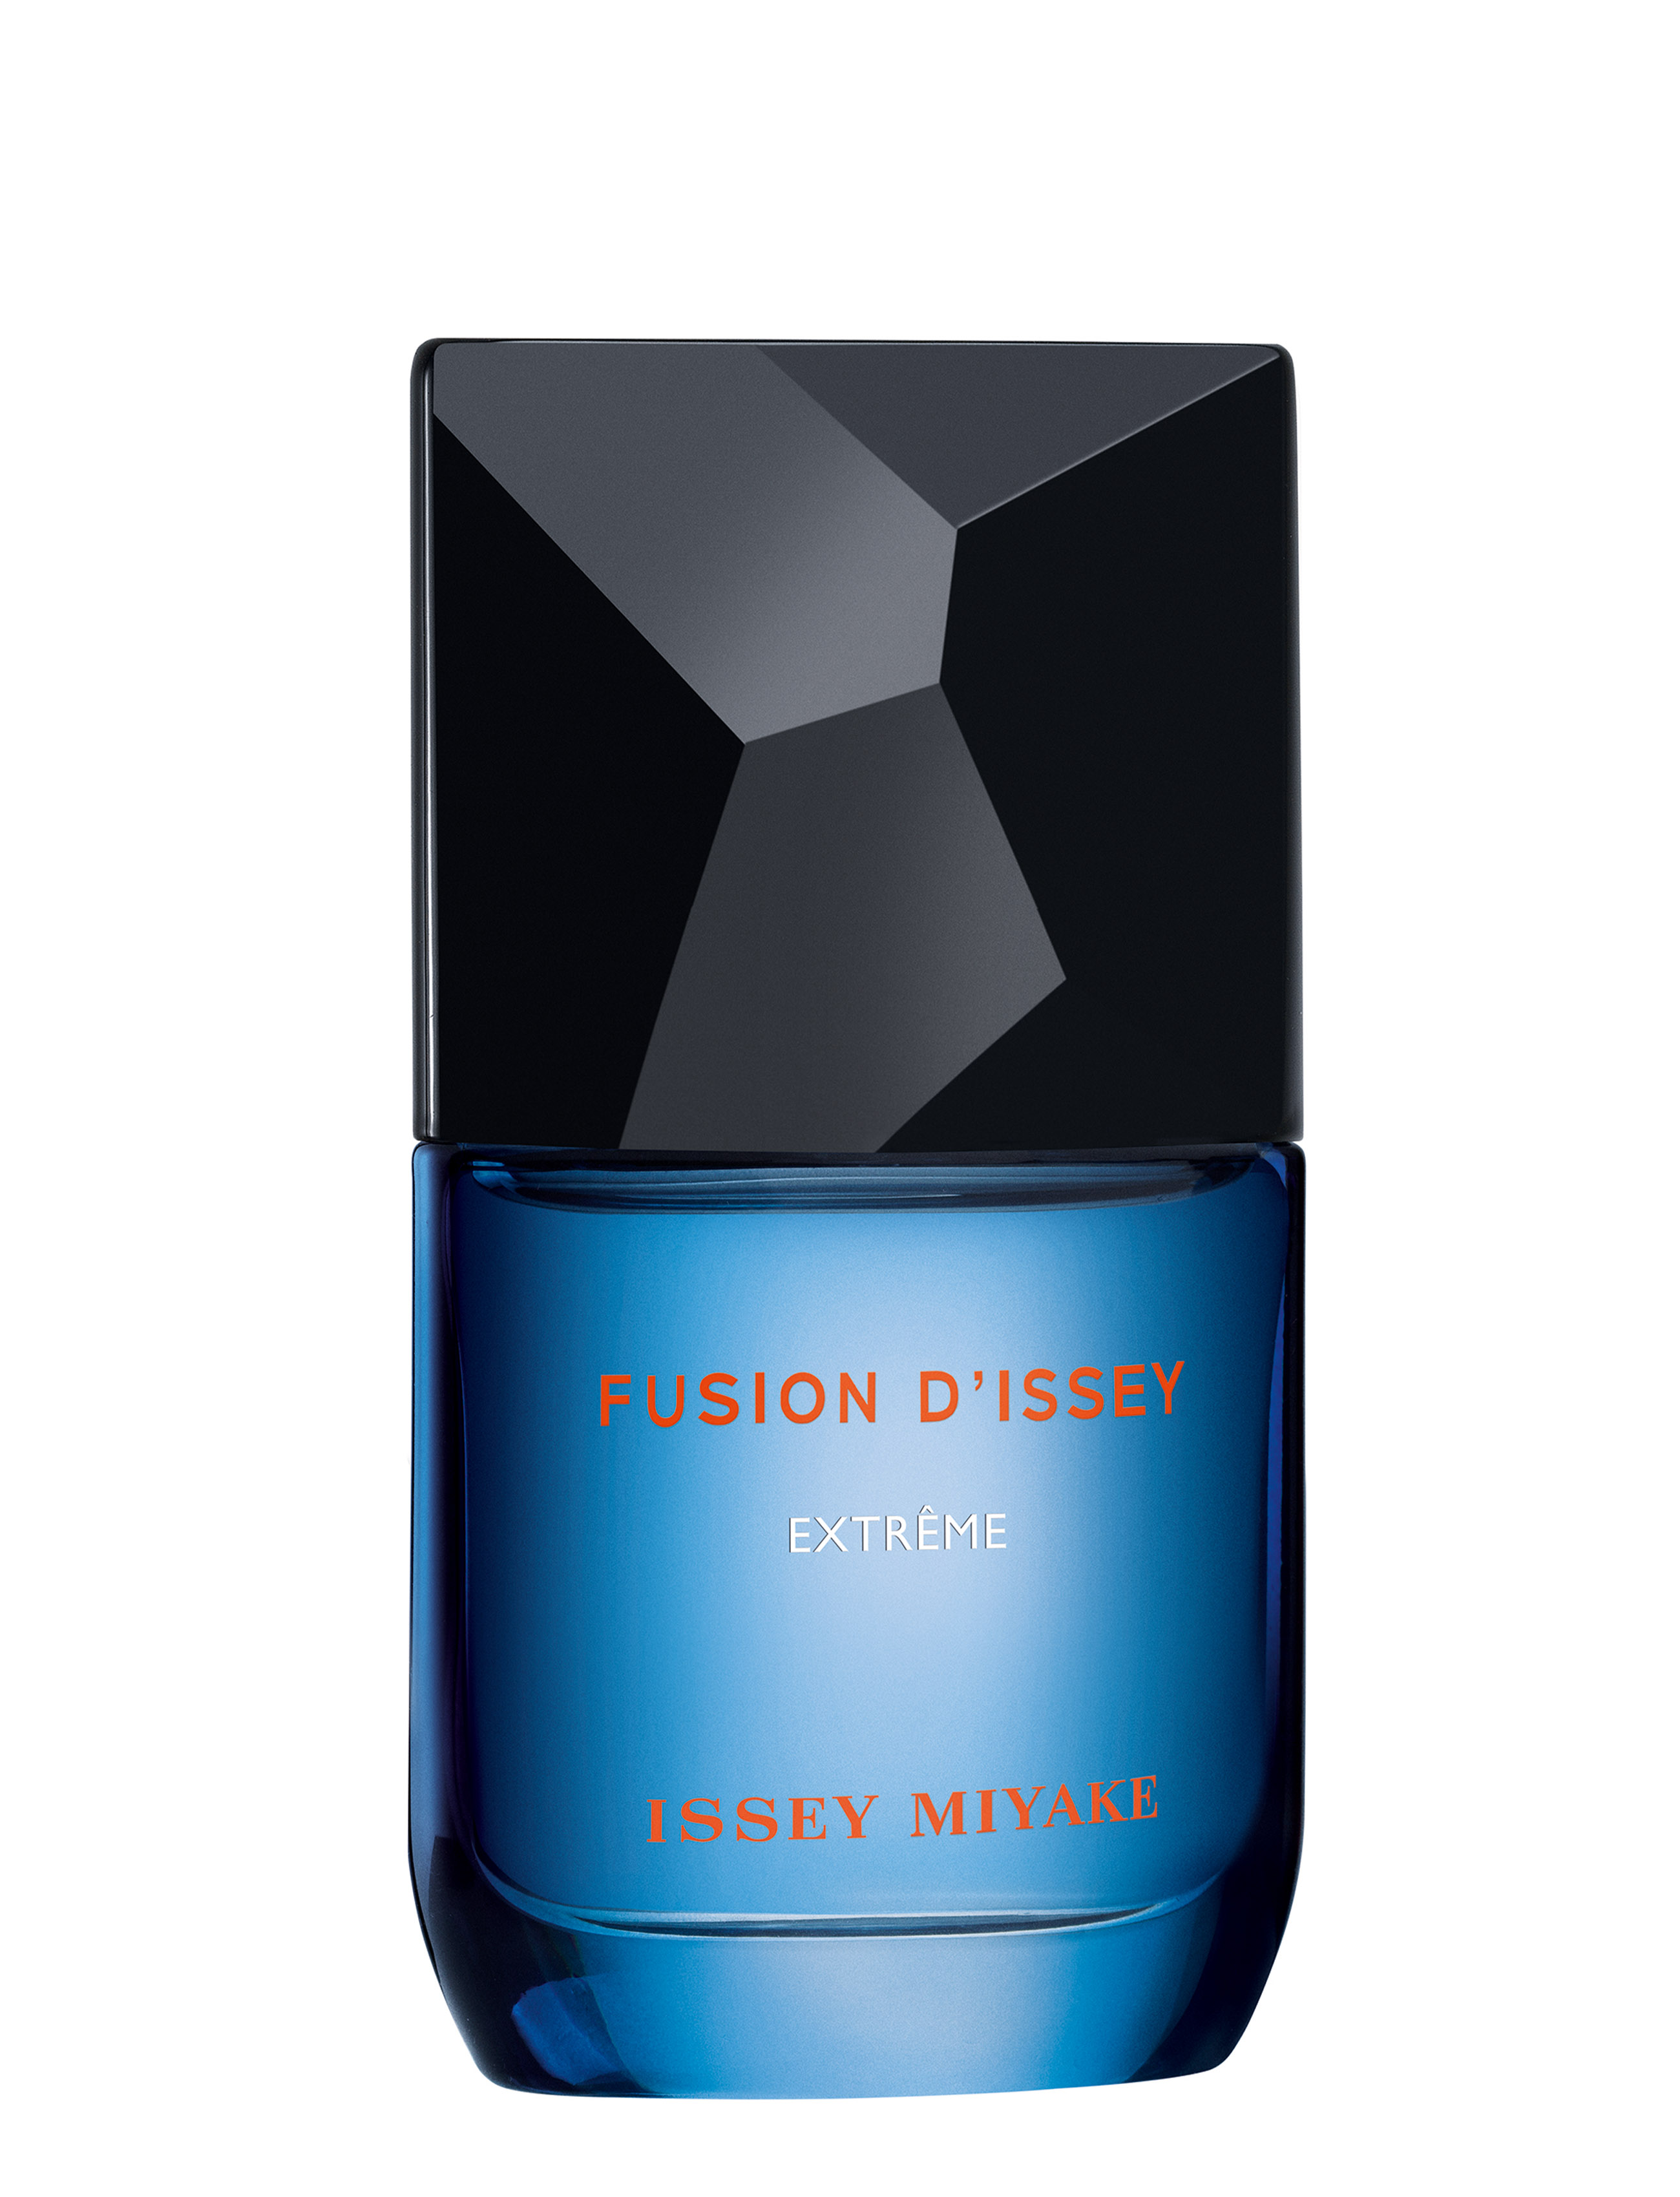 Issey Miyake Fusion D'Issey Extreme EDT, 50 ml